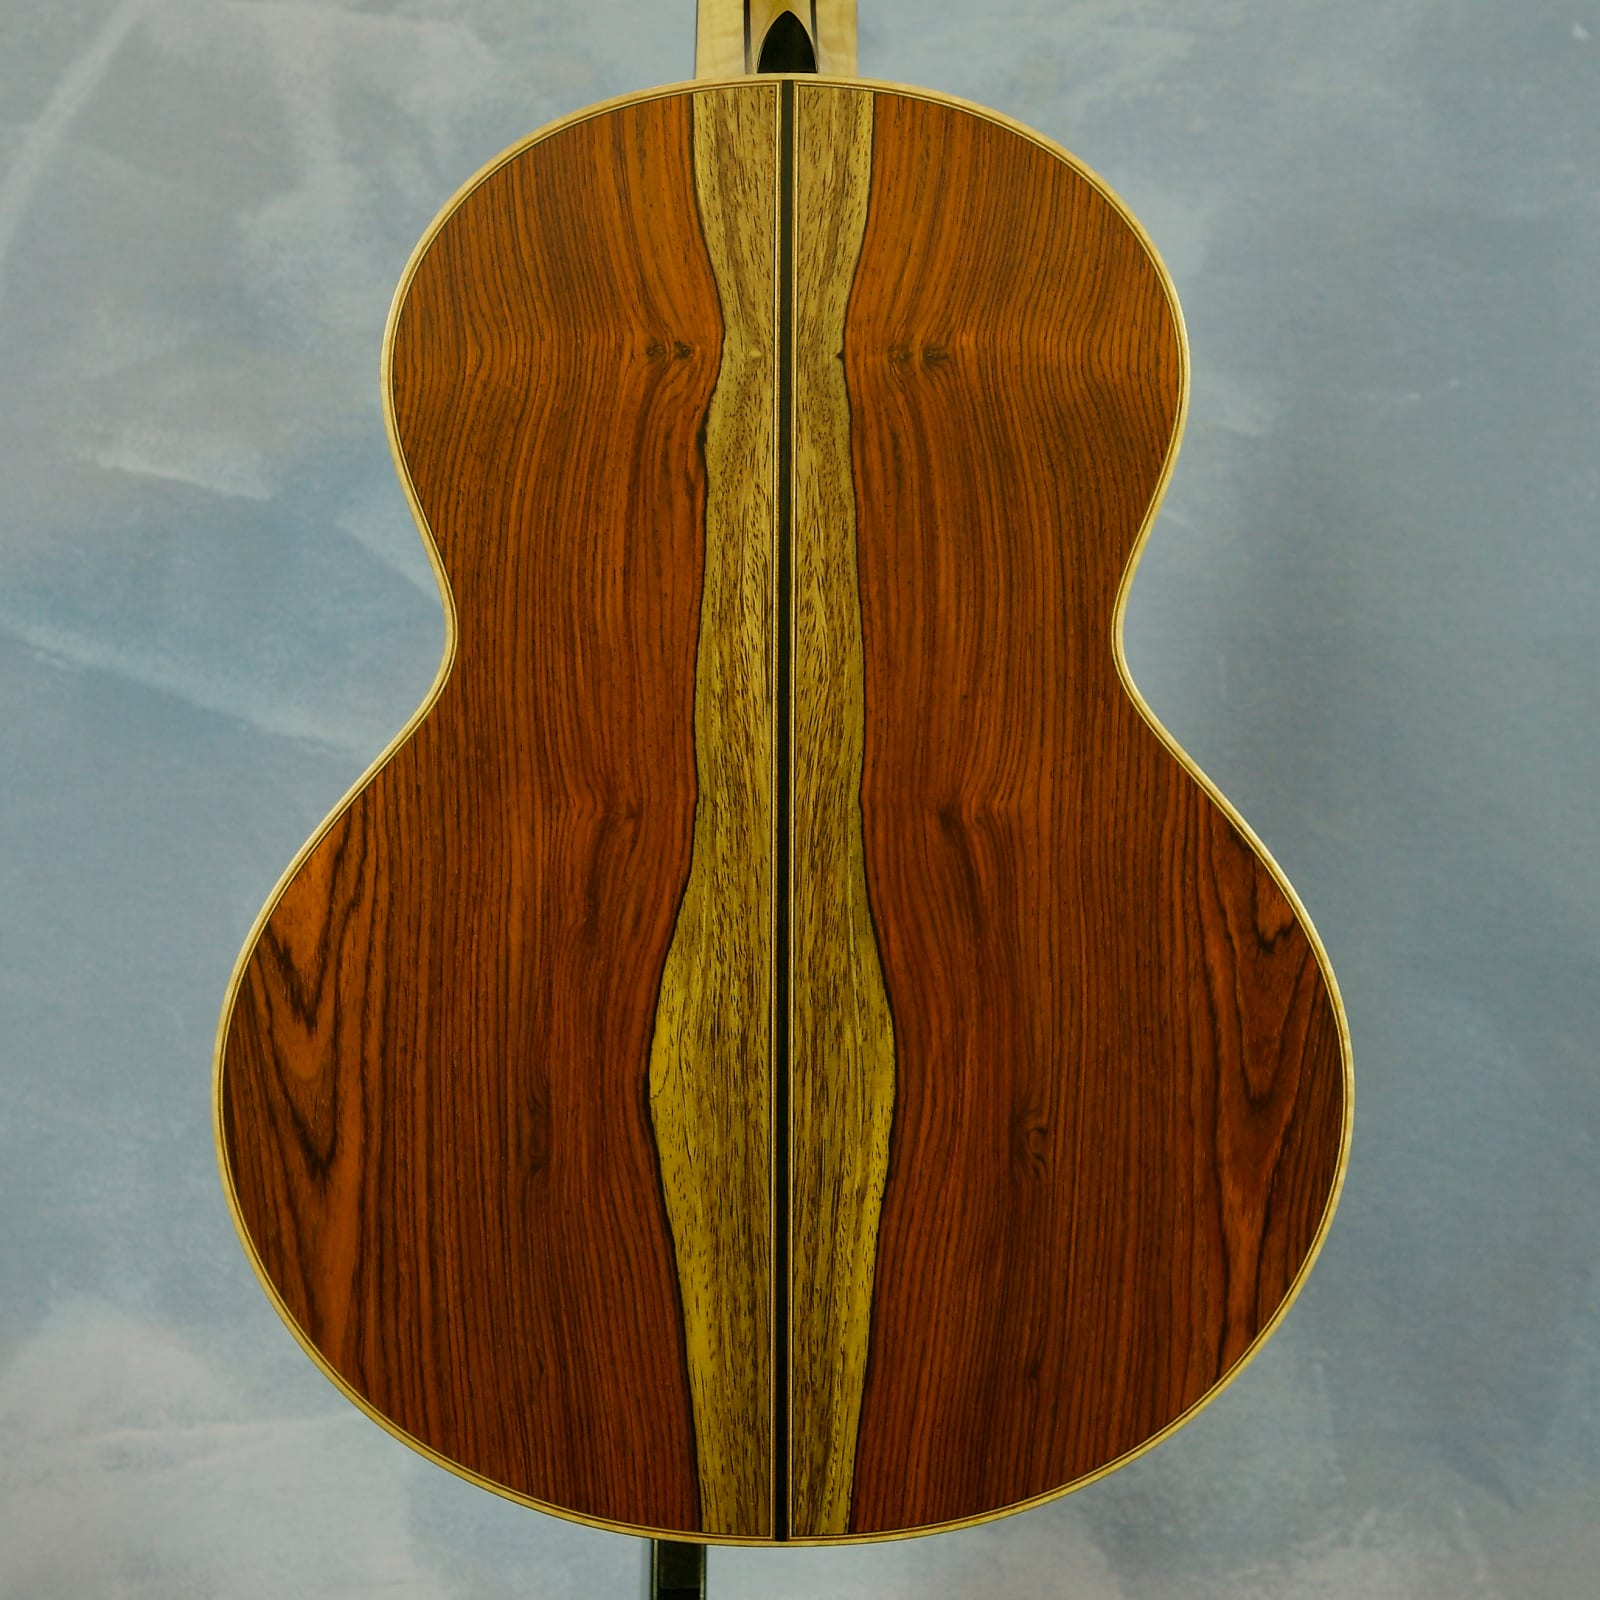 Lowden S-50 NAMM 2019 Special Cocobolo/Sinker Redwood